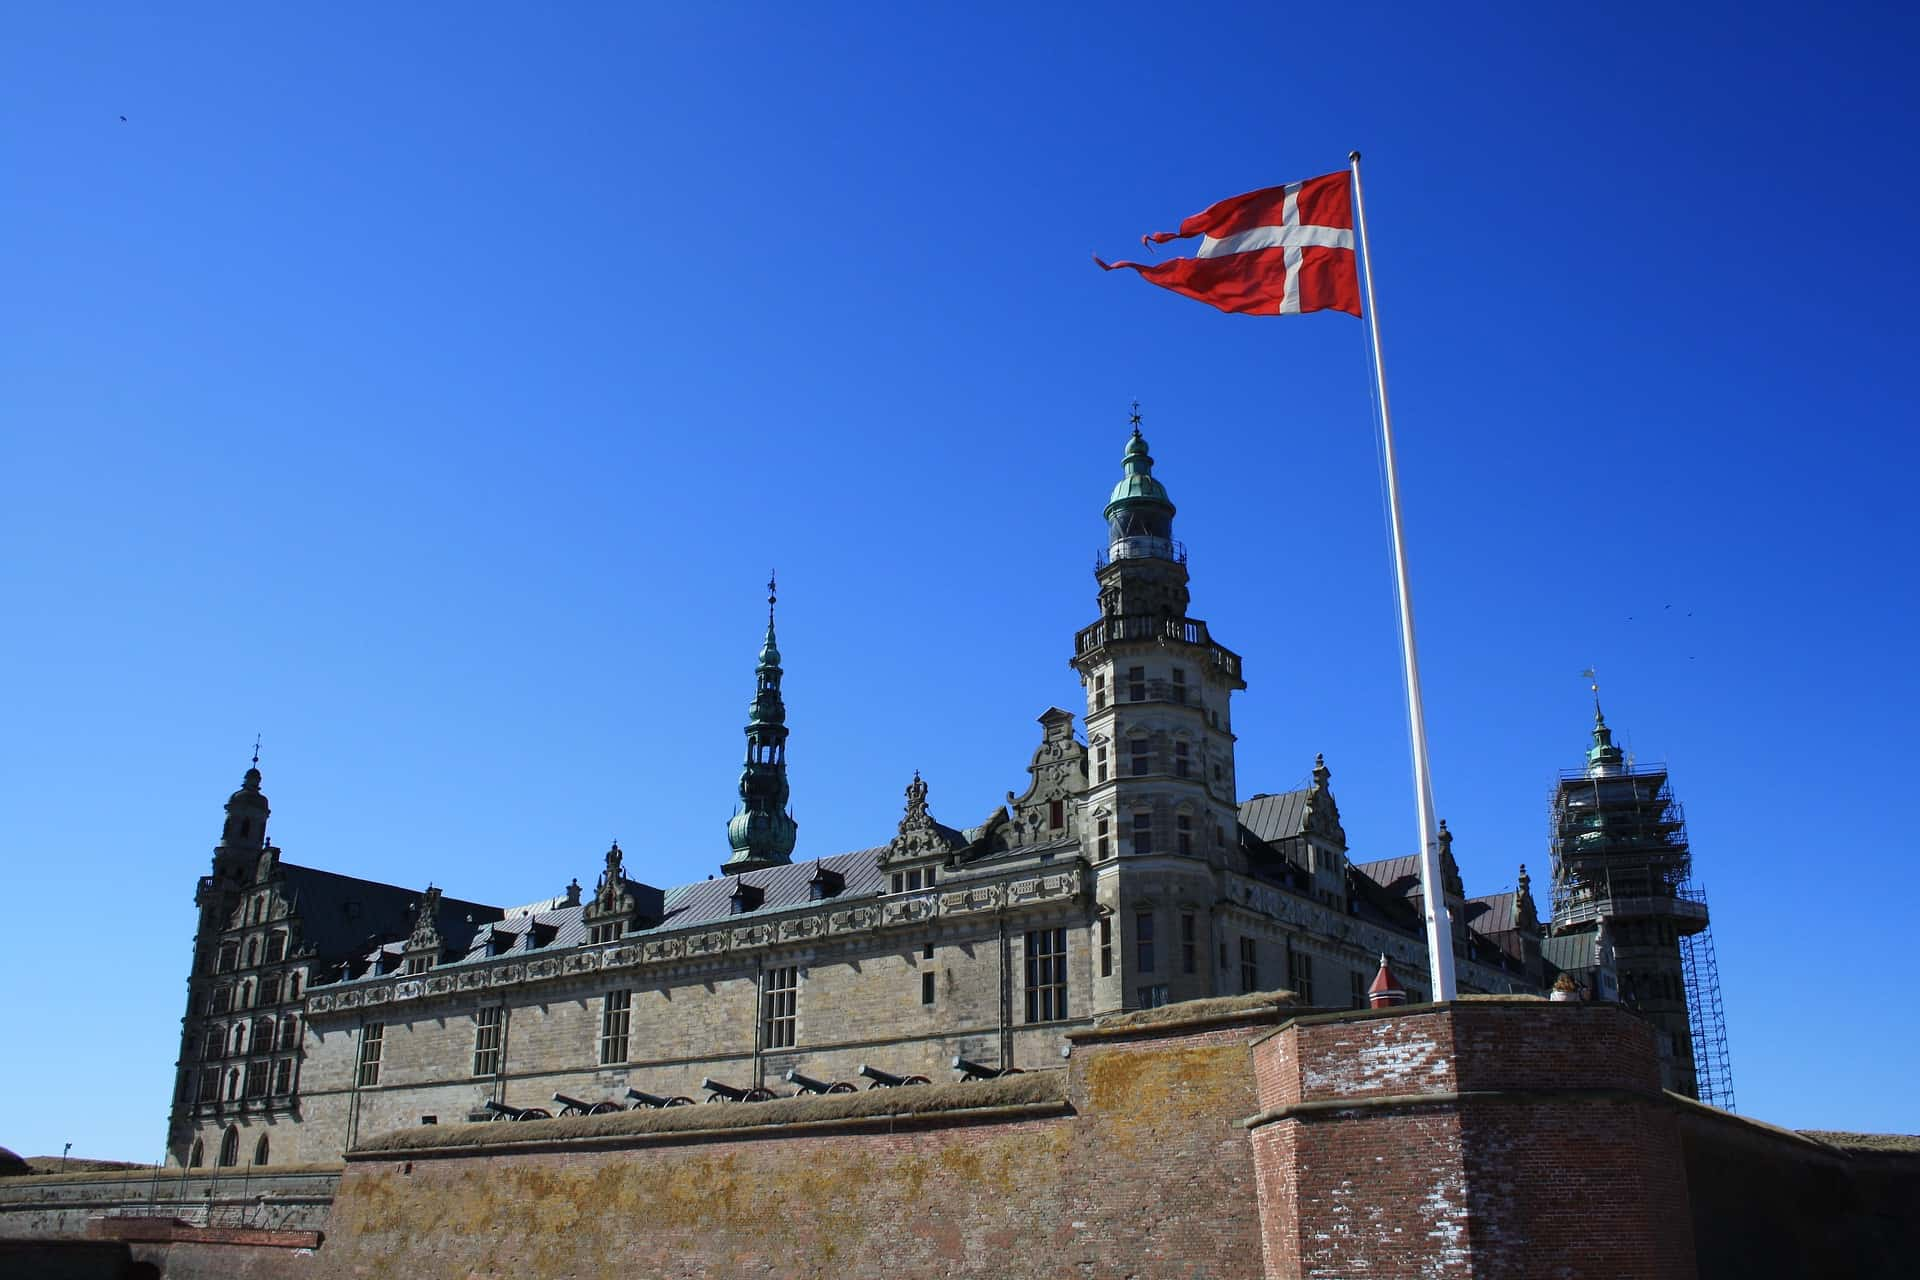 Kronborg Slot is the most famous castle in Denmark. Thanks to Shakespeare, who used it as the location of his Hamlet, everyone knows this stately castle.